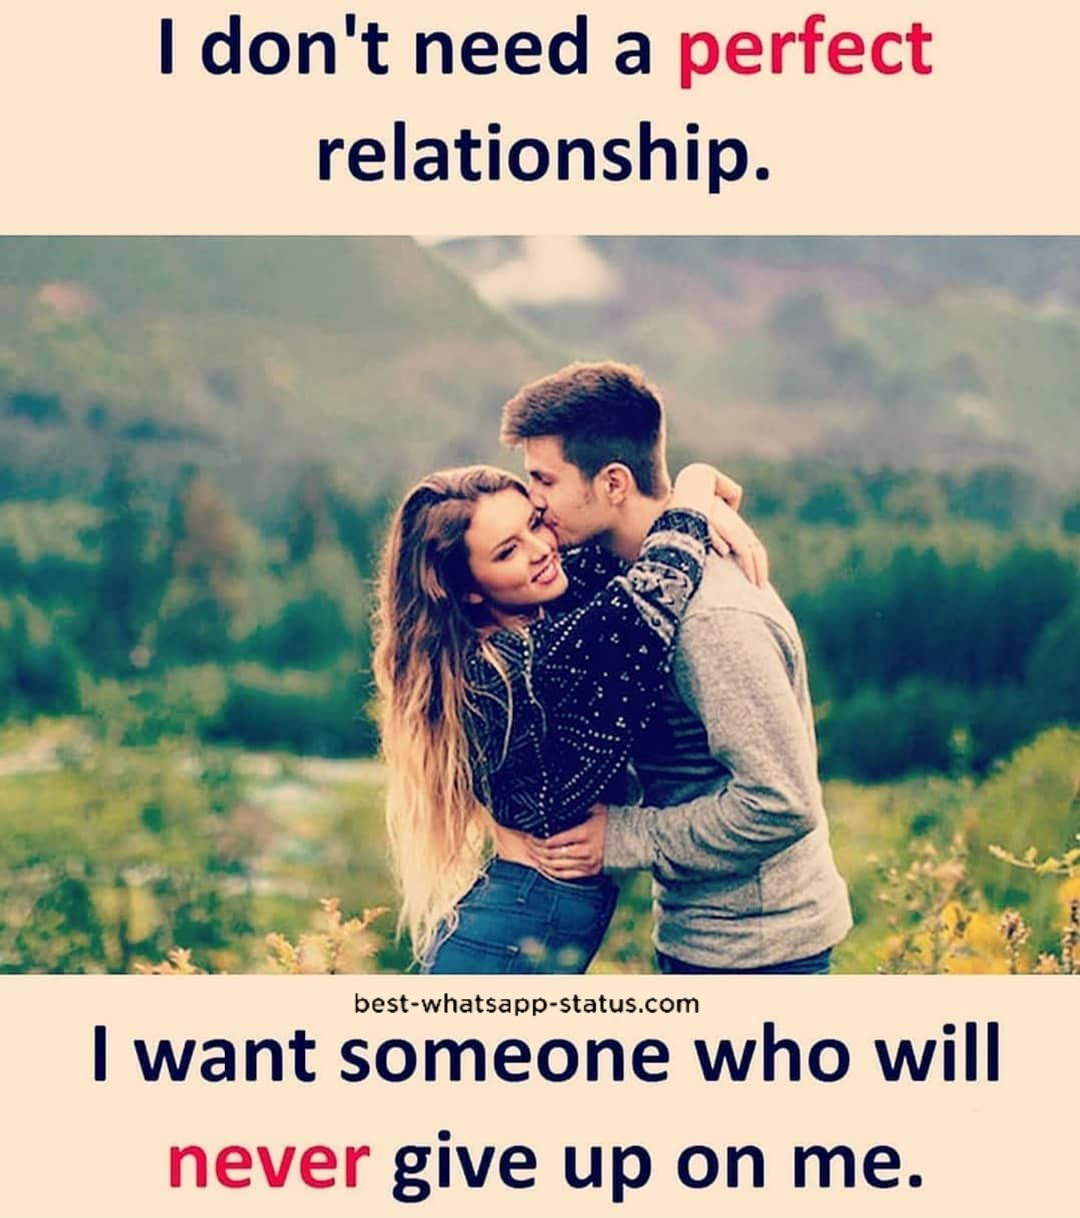 Cute Couple Quotes Shorts Whatsapp Status For Lover Couples Status Love Quotes For Him Funny Cute Love Quotes For Him Relationship Quotes For Him